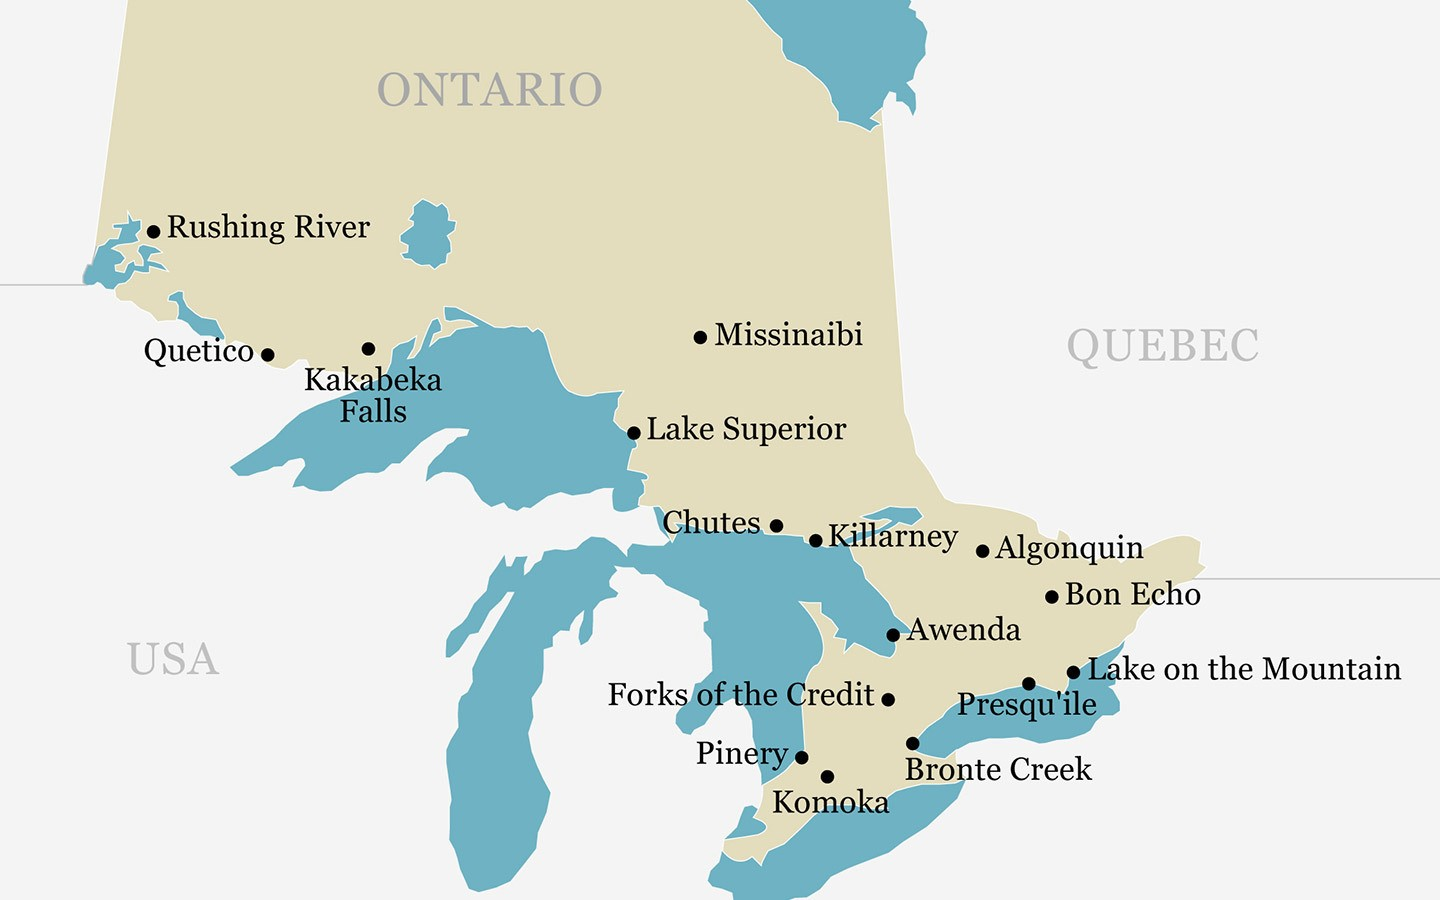 Ontario Provincial Parks map